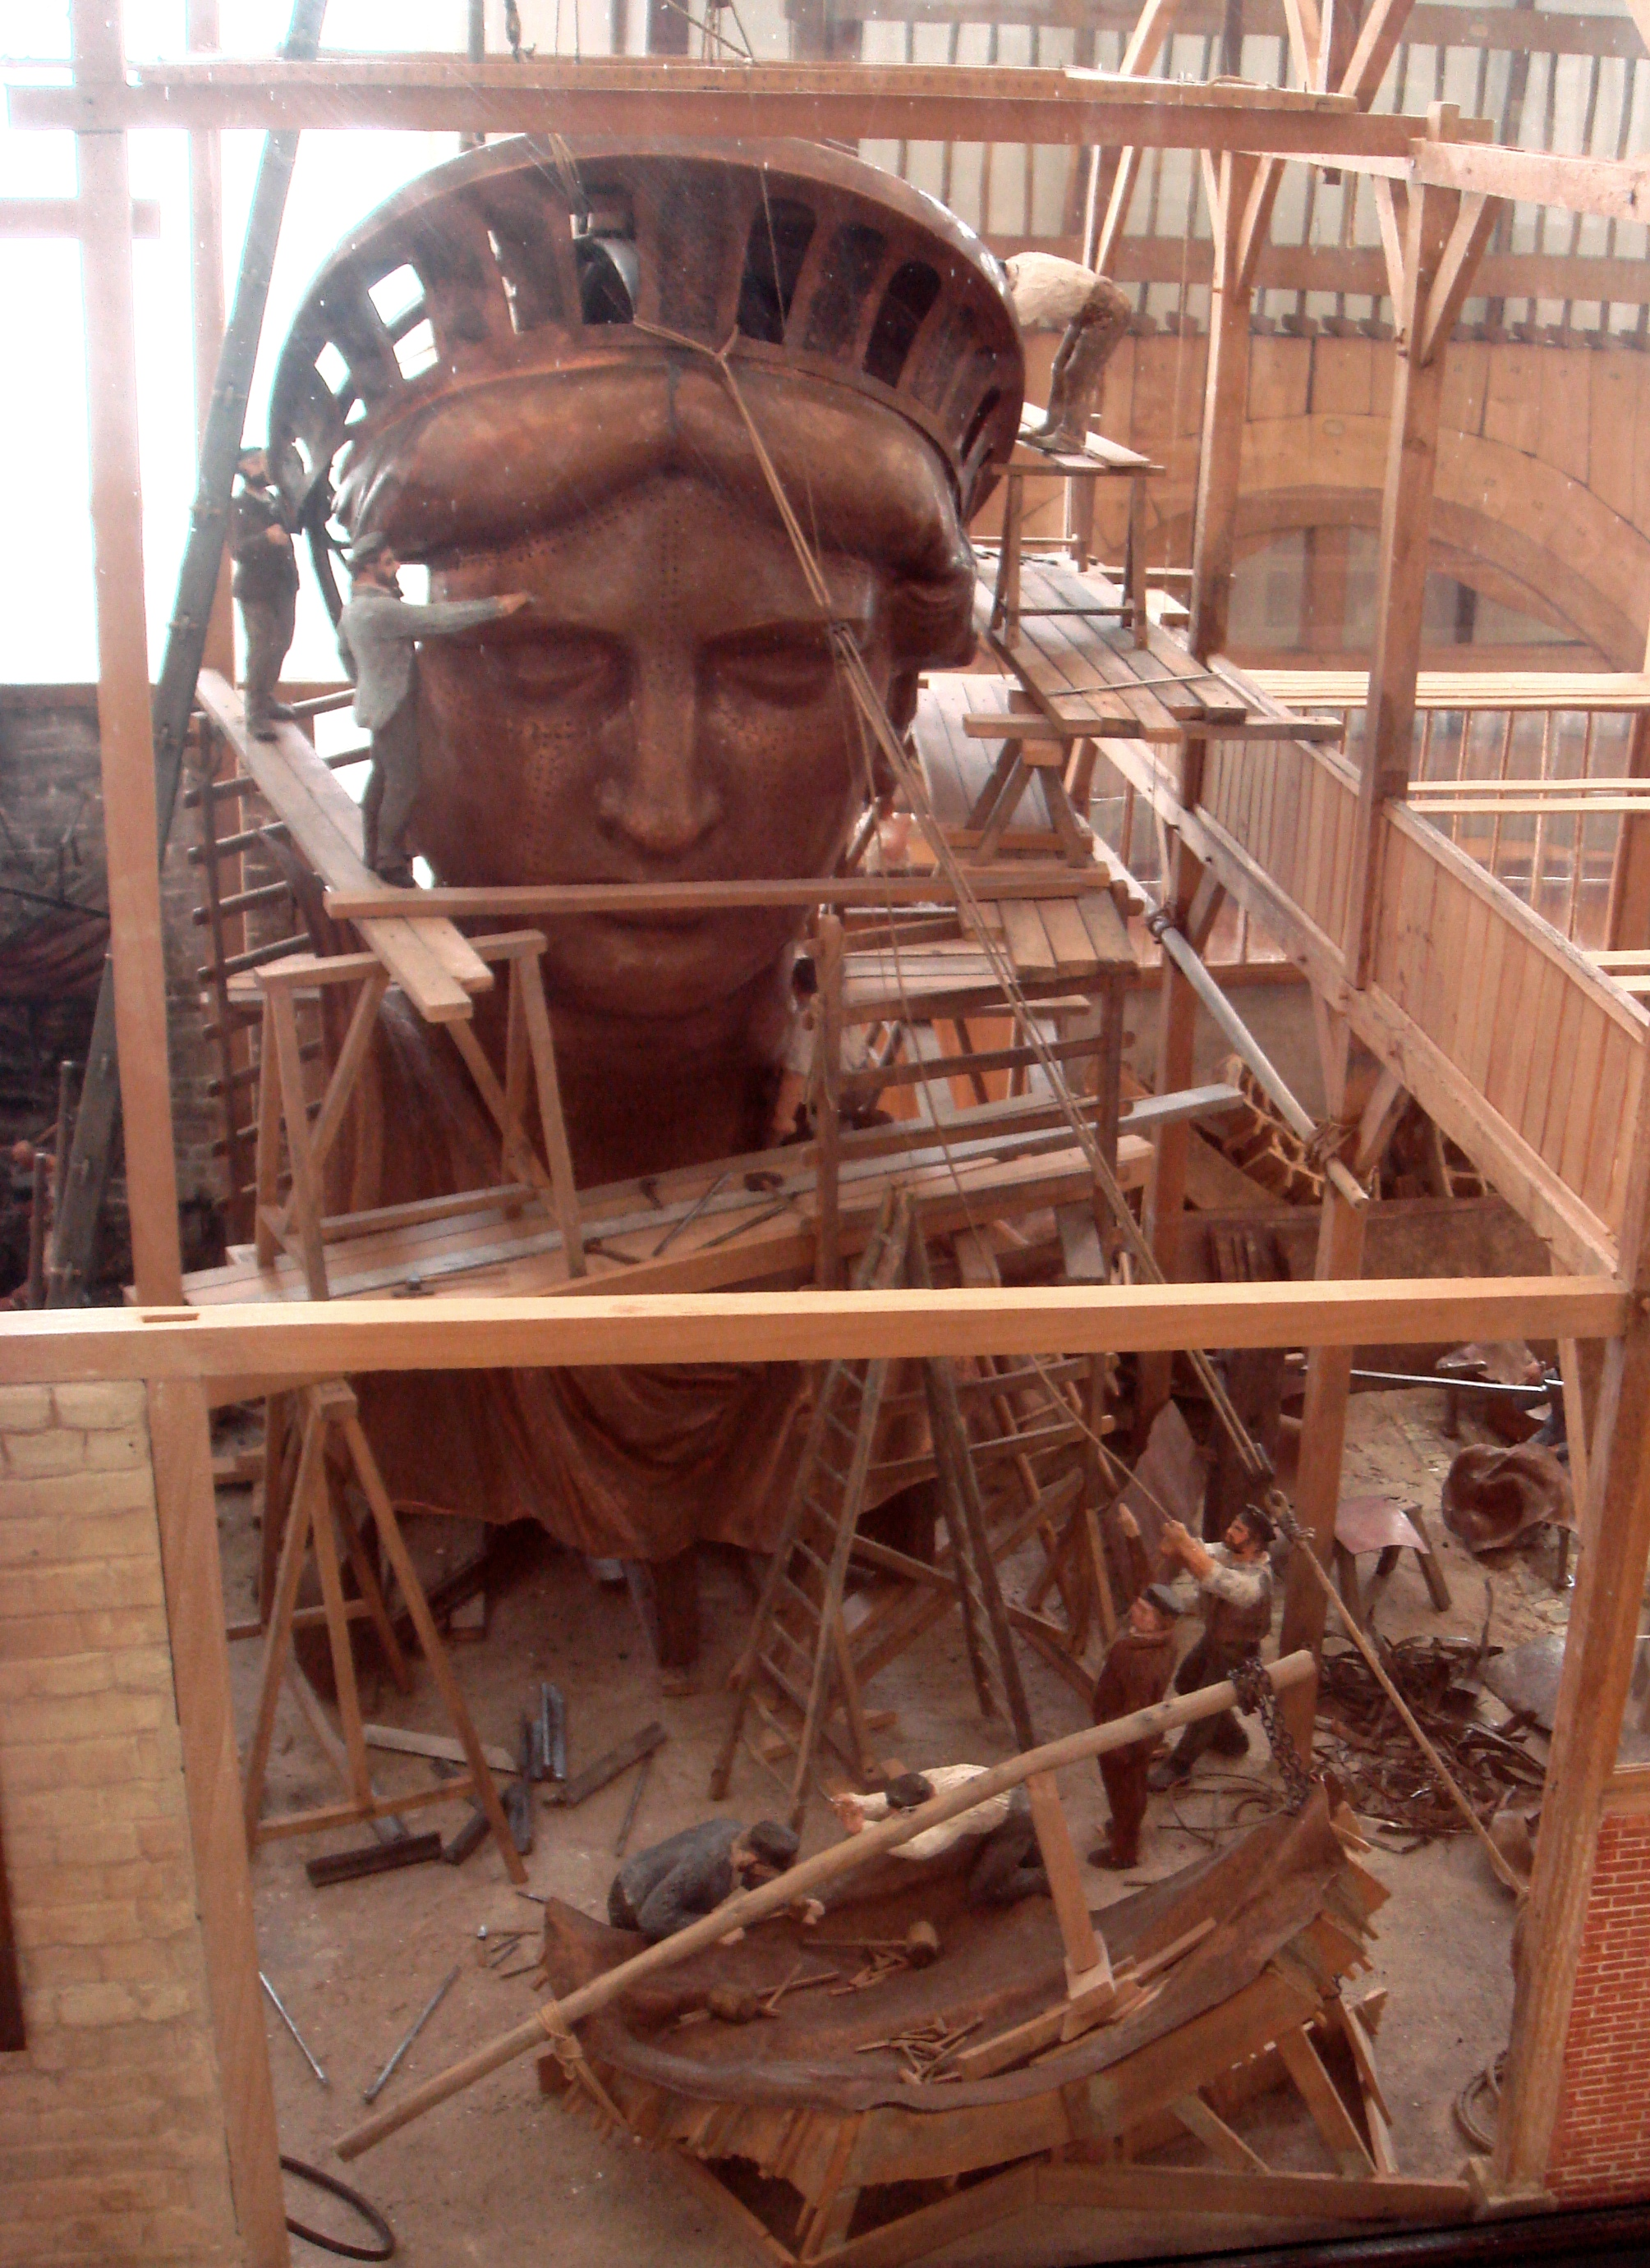 statue of liberty arrived in pieces before taking the. Black Bedroom Furniture Sets. Home Design Ideas